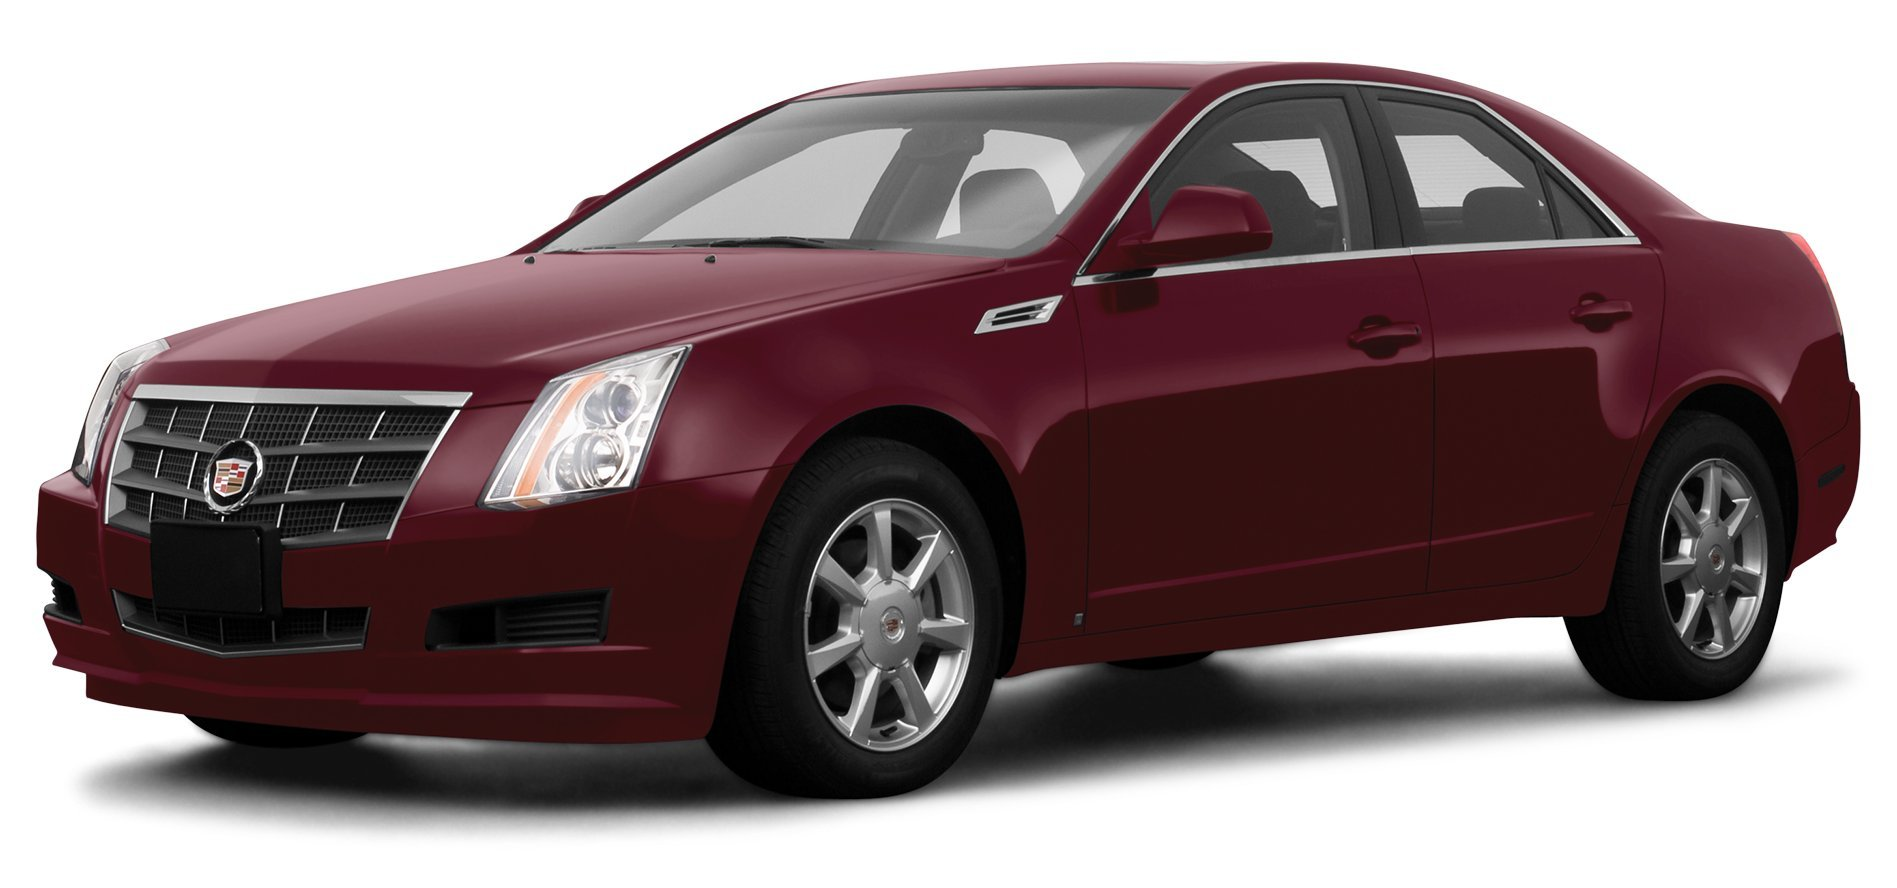 2009 cadillac cts reviews images and specs. Black Bedroom Furniture Sets. Home Design Ideas